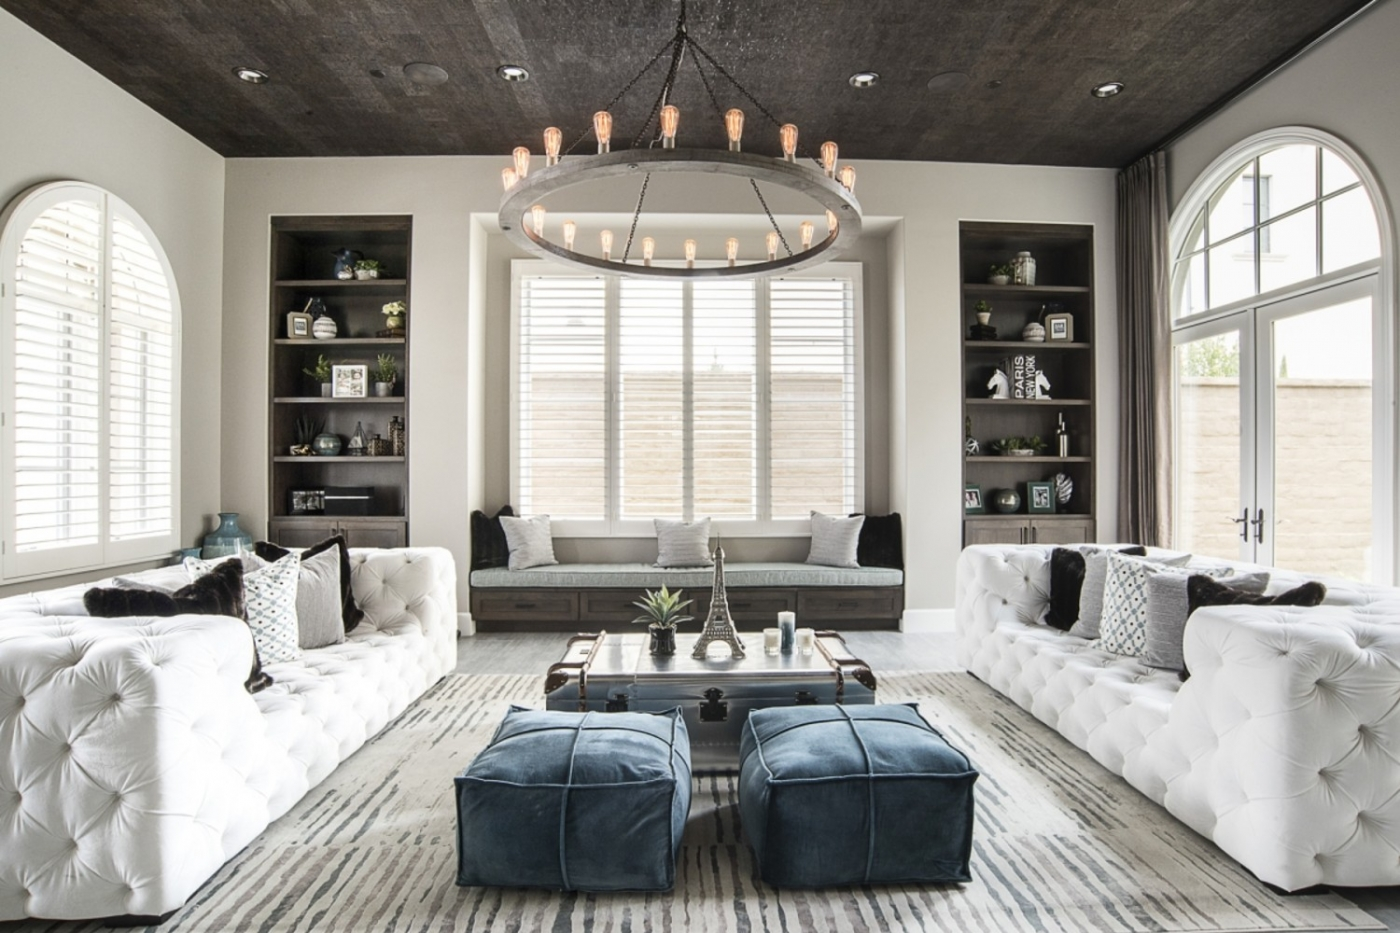 Modern Interior Design Projects To Discover In Newport Beach ft interior design project Modern Interior Design Projects To Discover In Newport Beach Modern Interior Design Projects To Discover In Newport Beach ft 1400x933